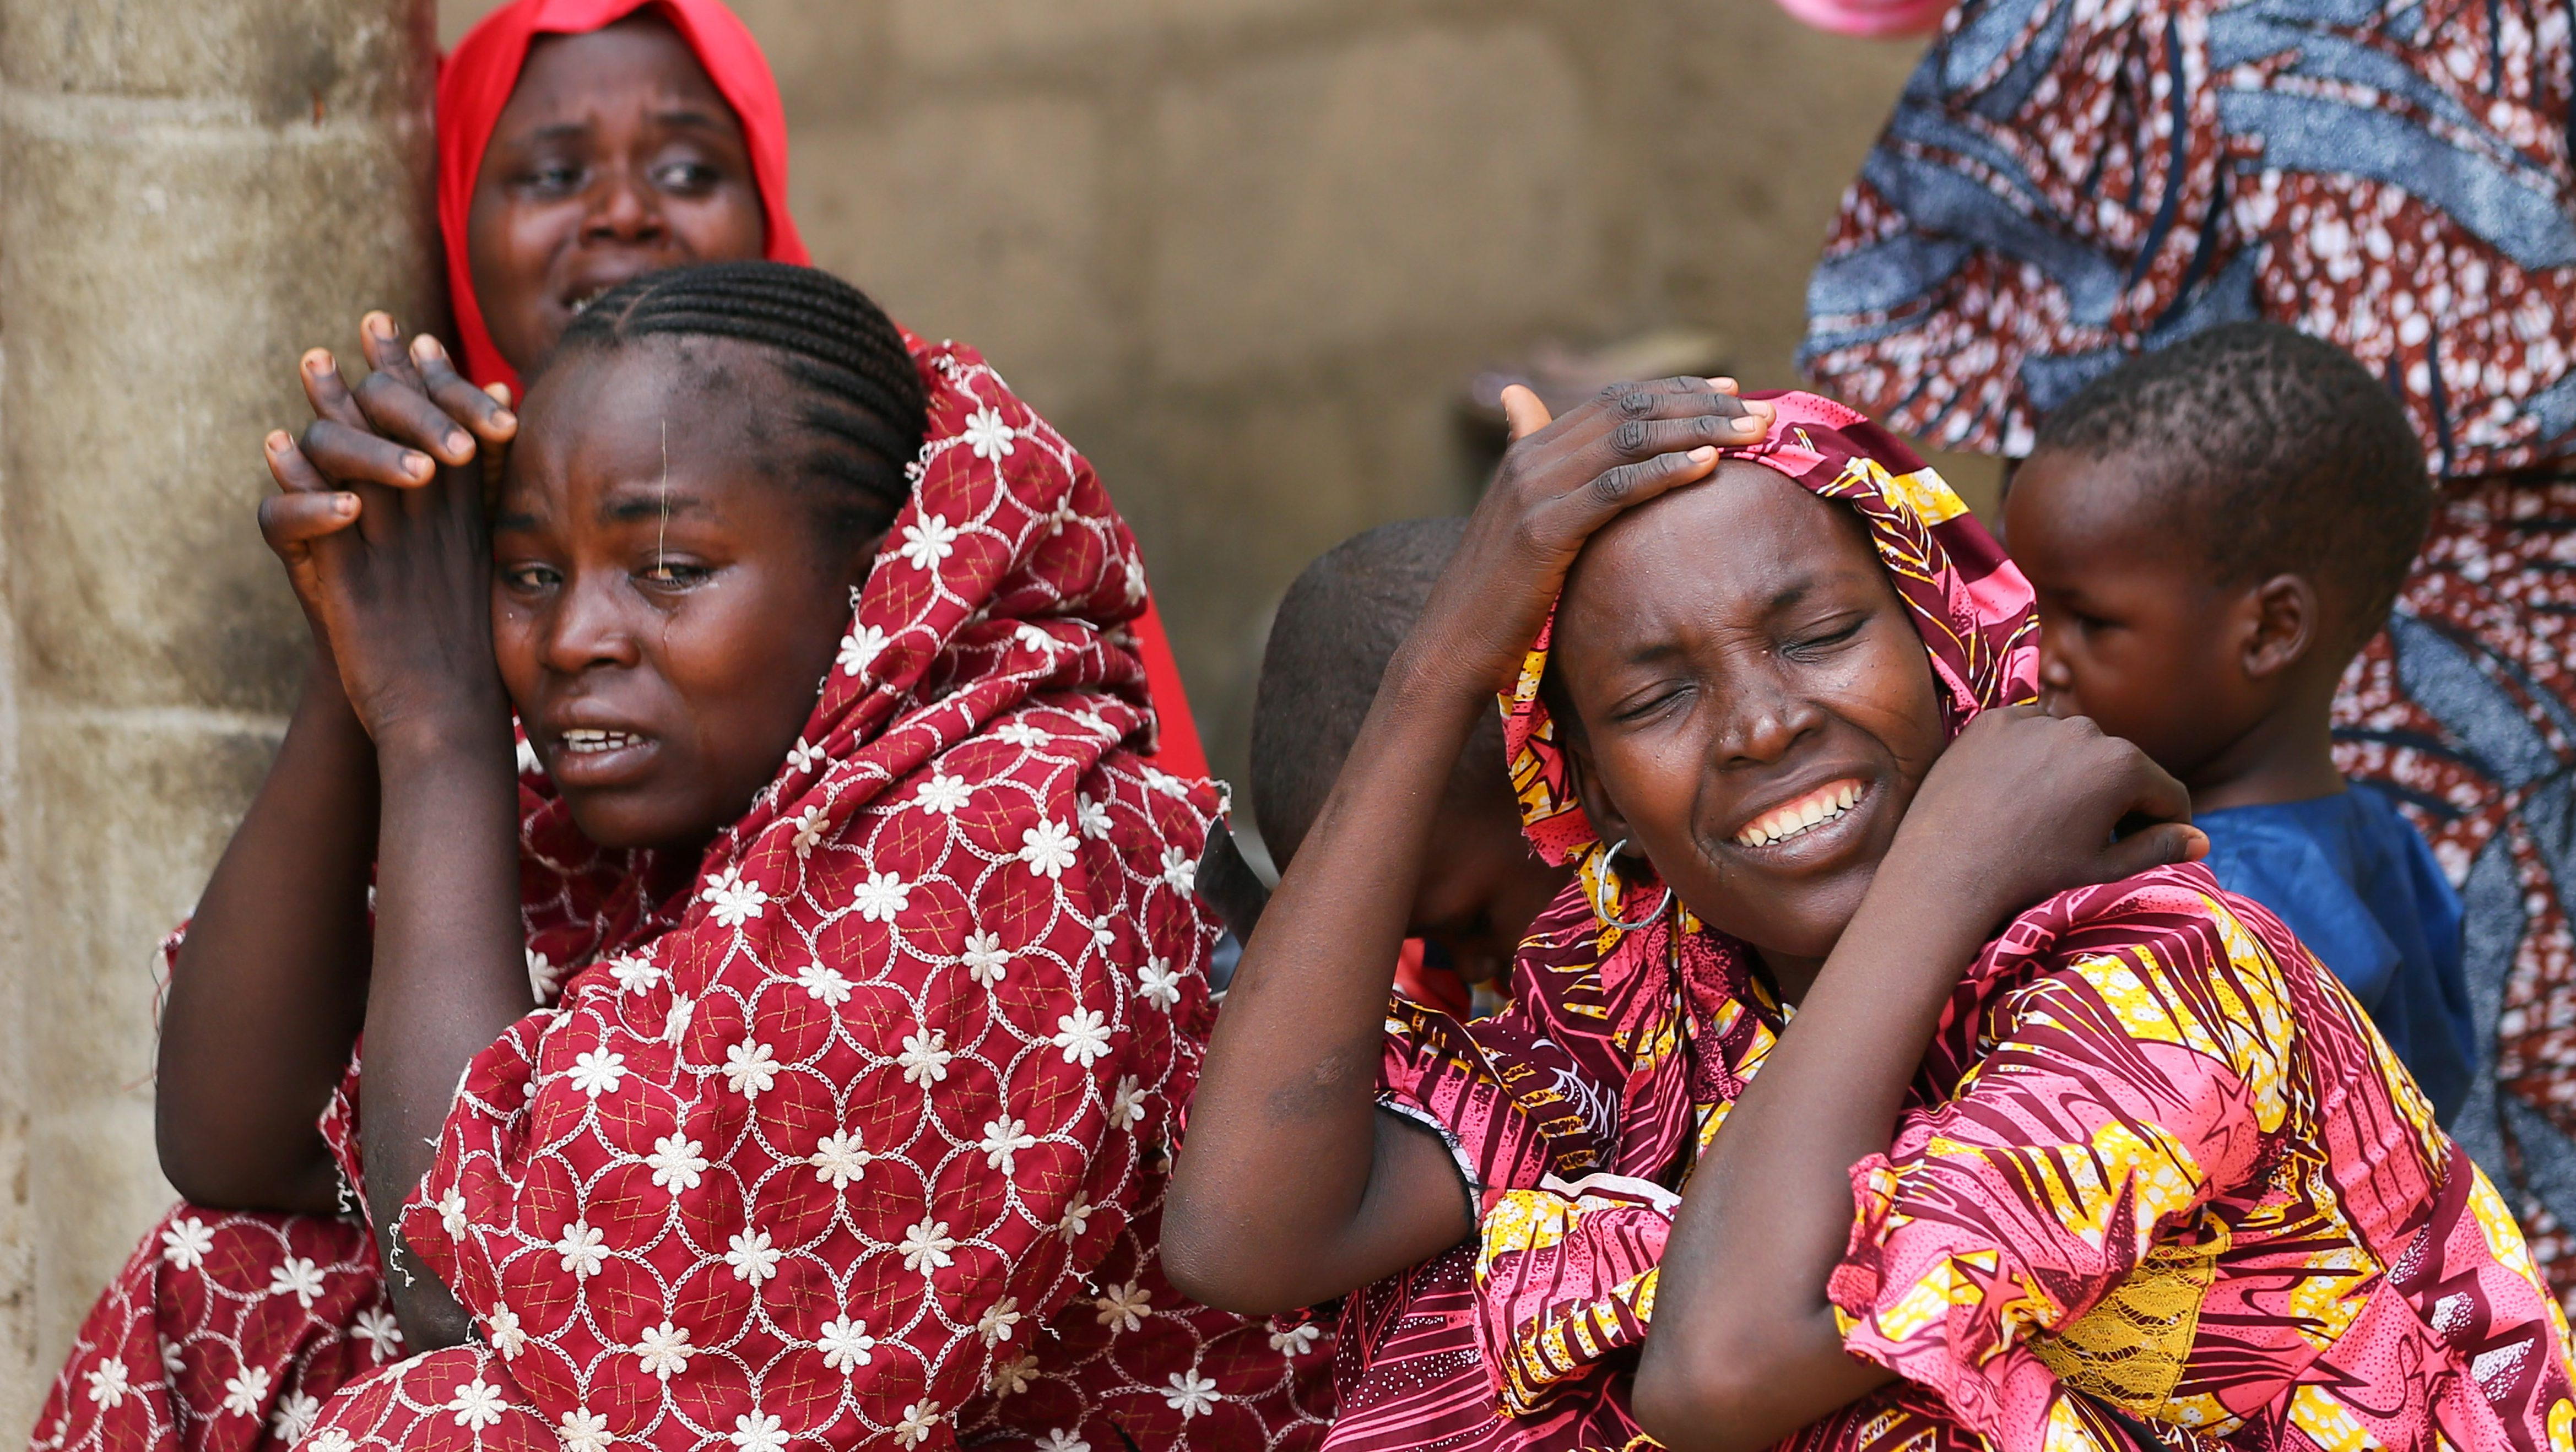 Relatives of missing school girls react in Dapchi in the northeastern state of Yobe